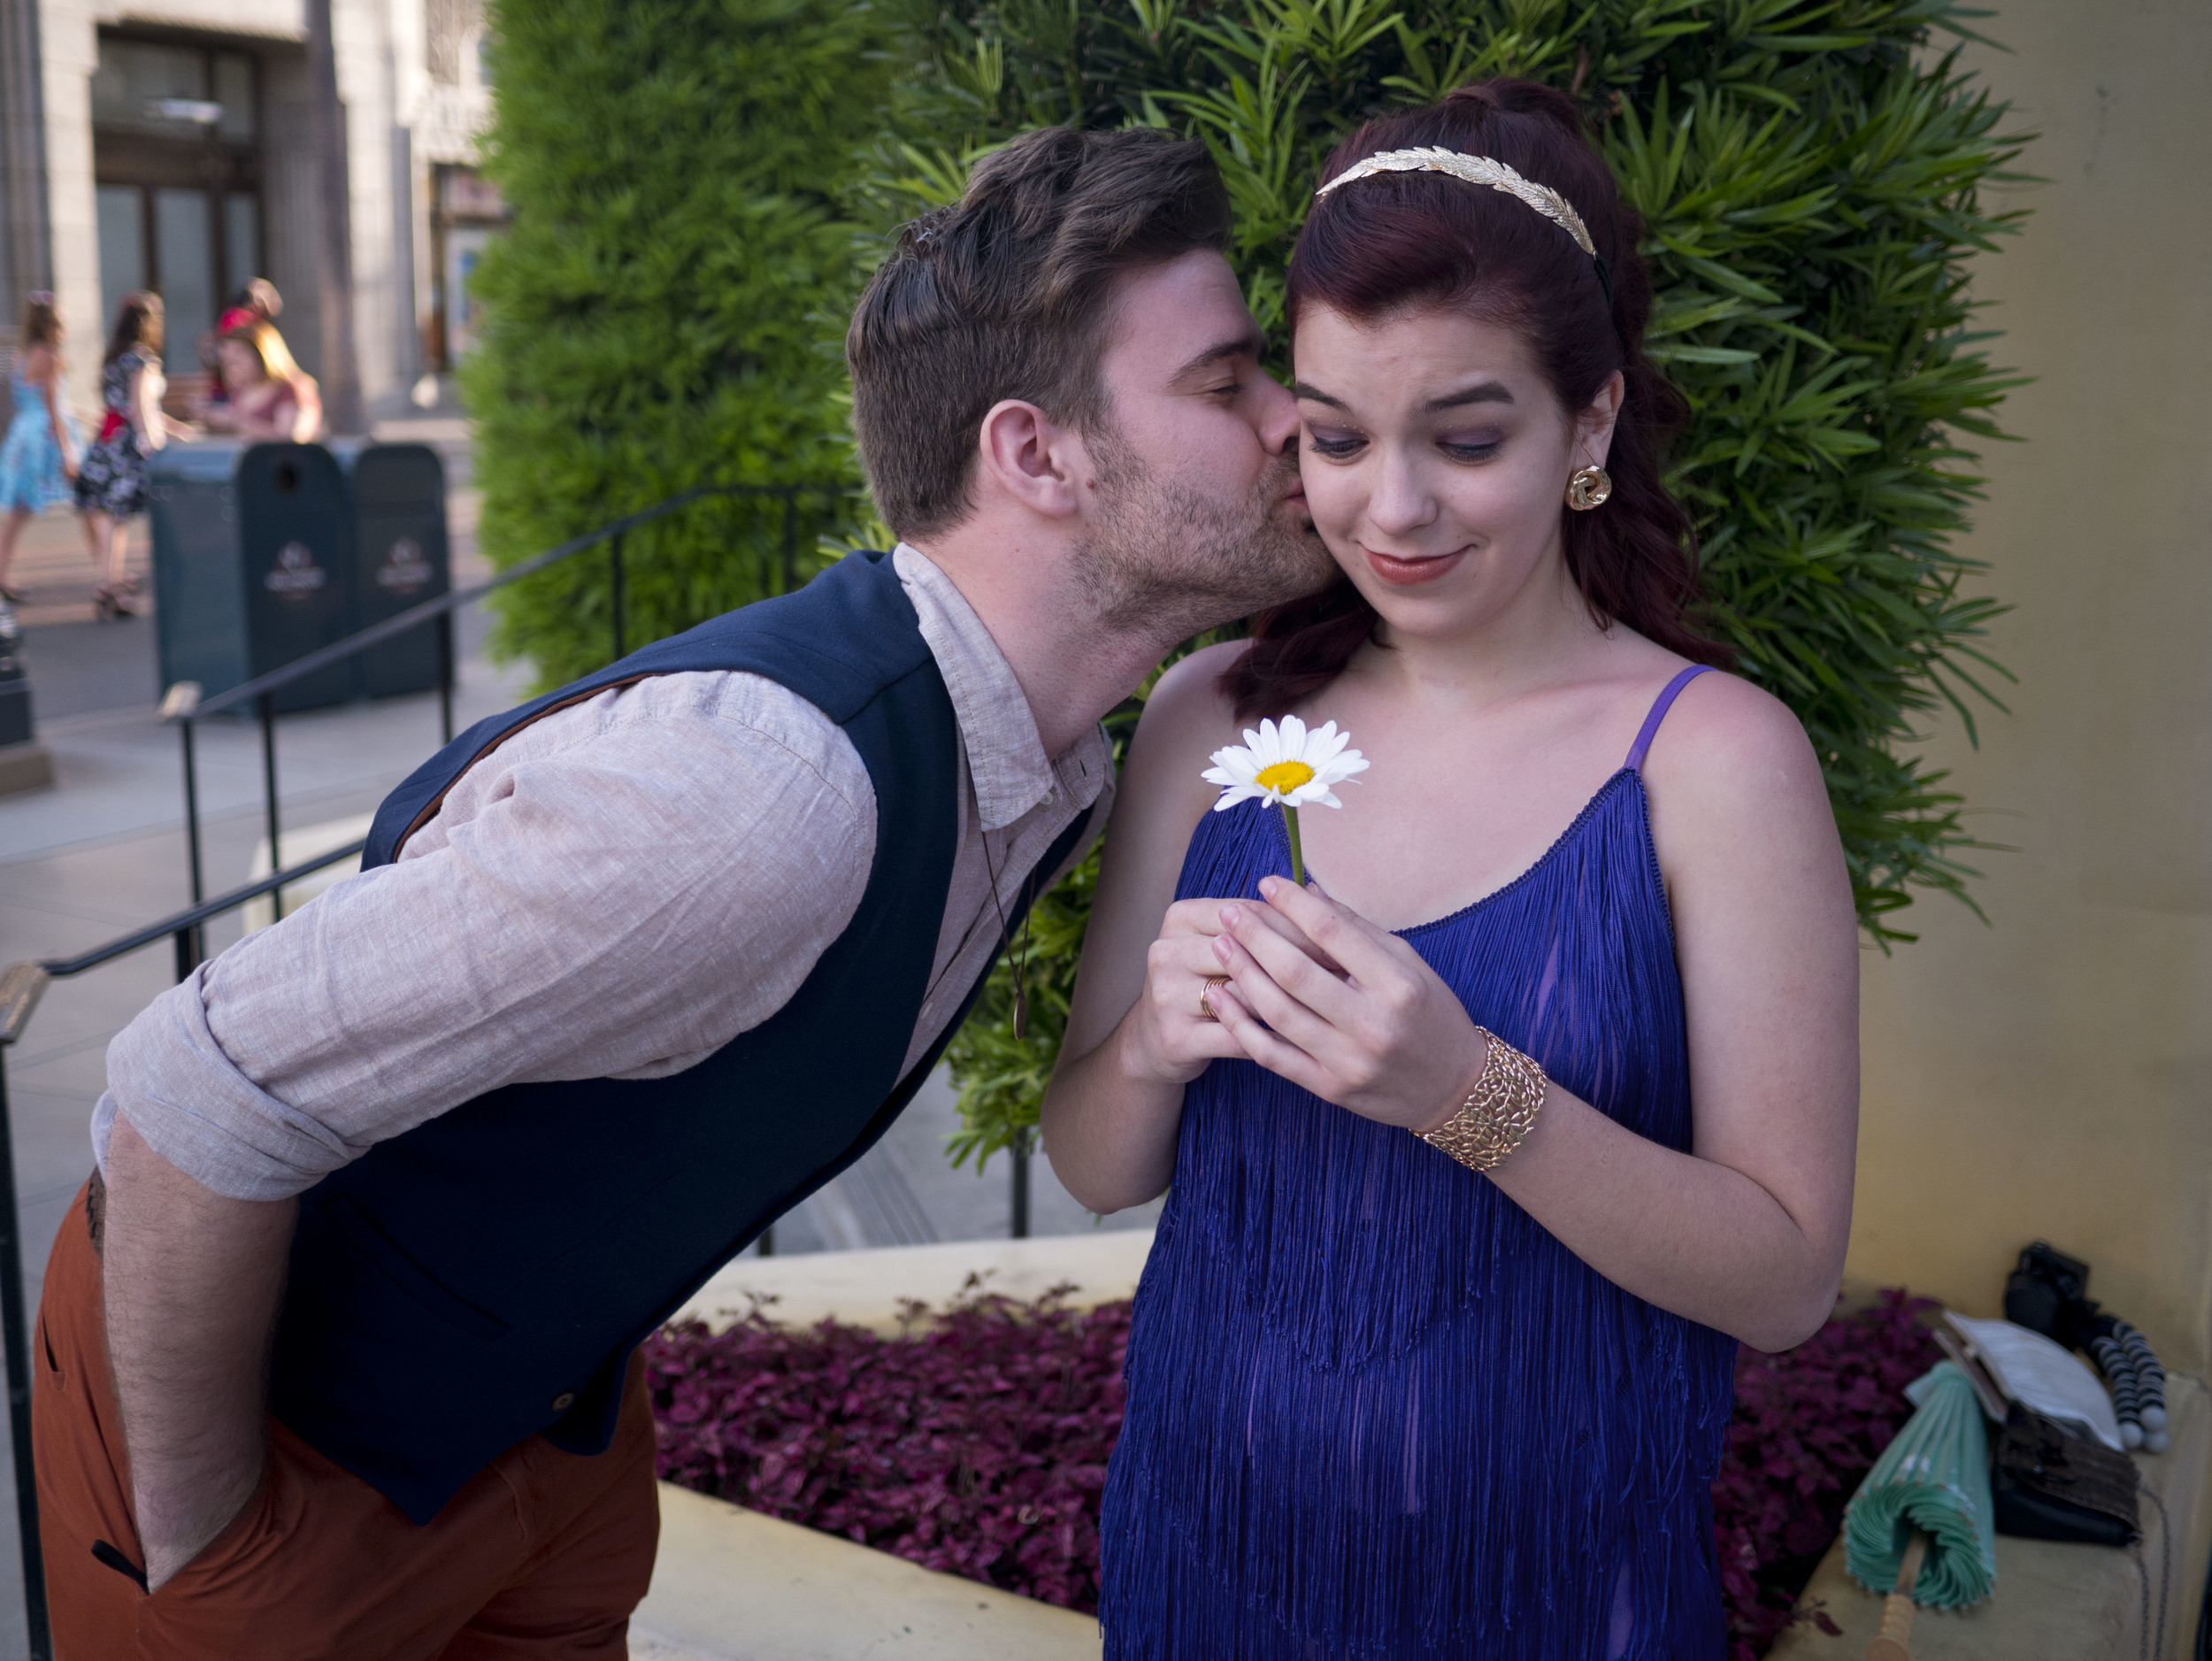 5-2-16 Spring Dapper Day 009.jpg